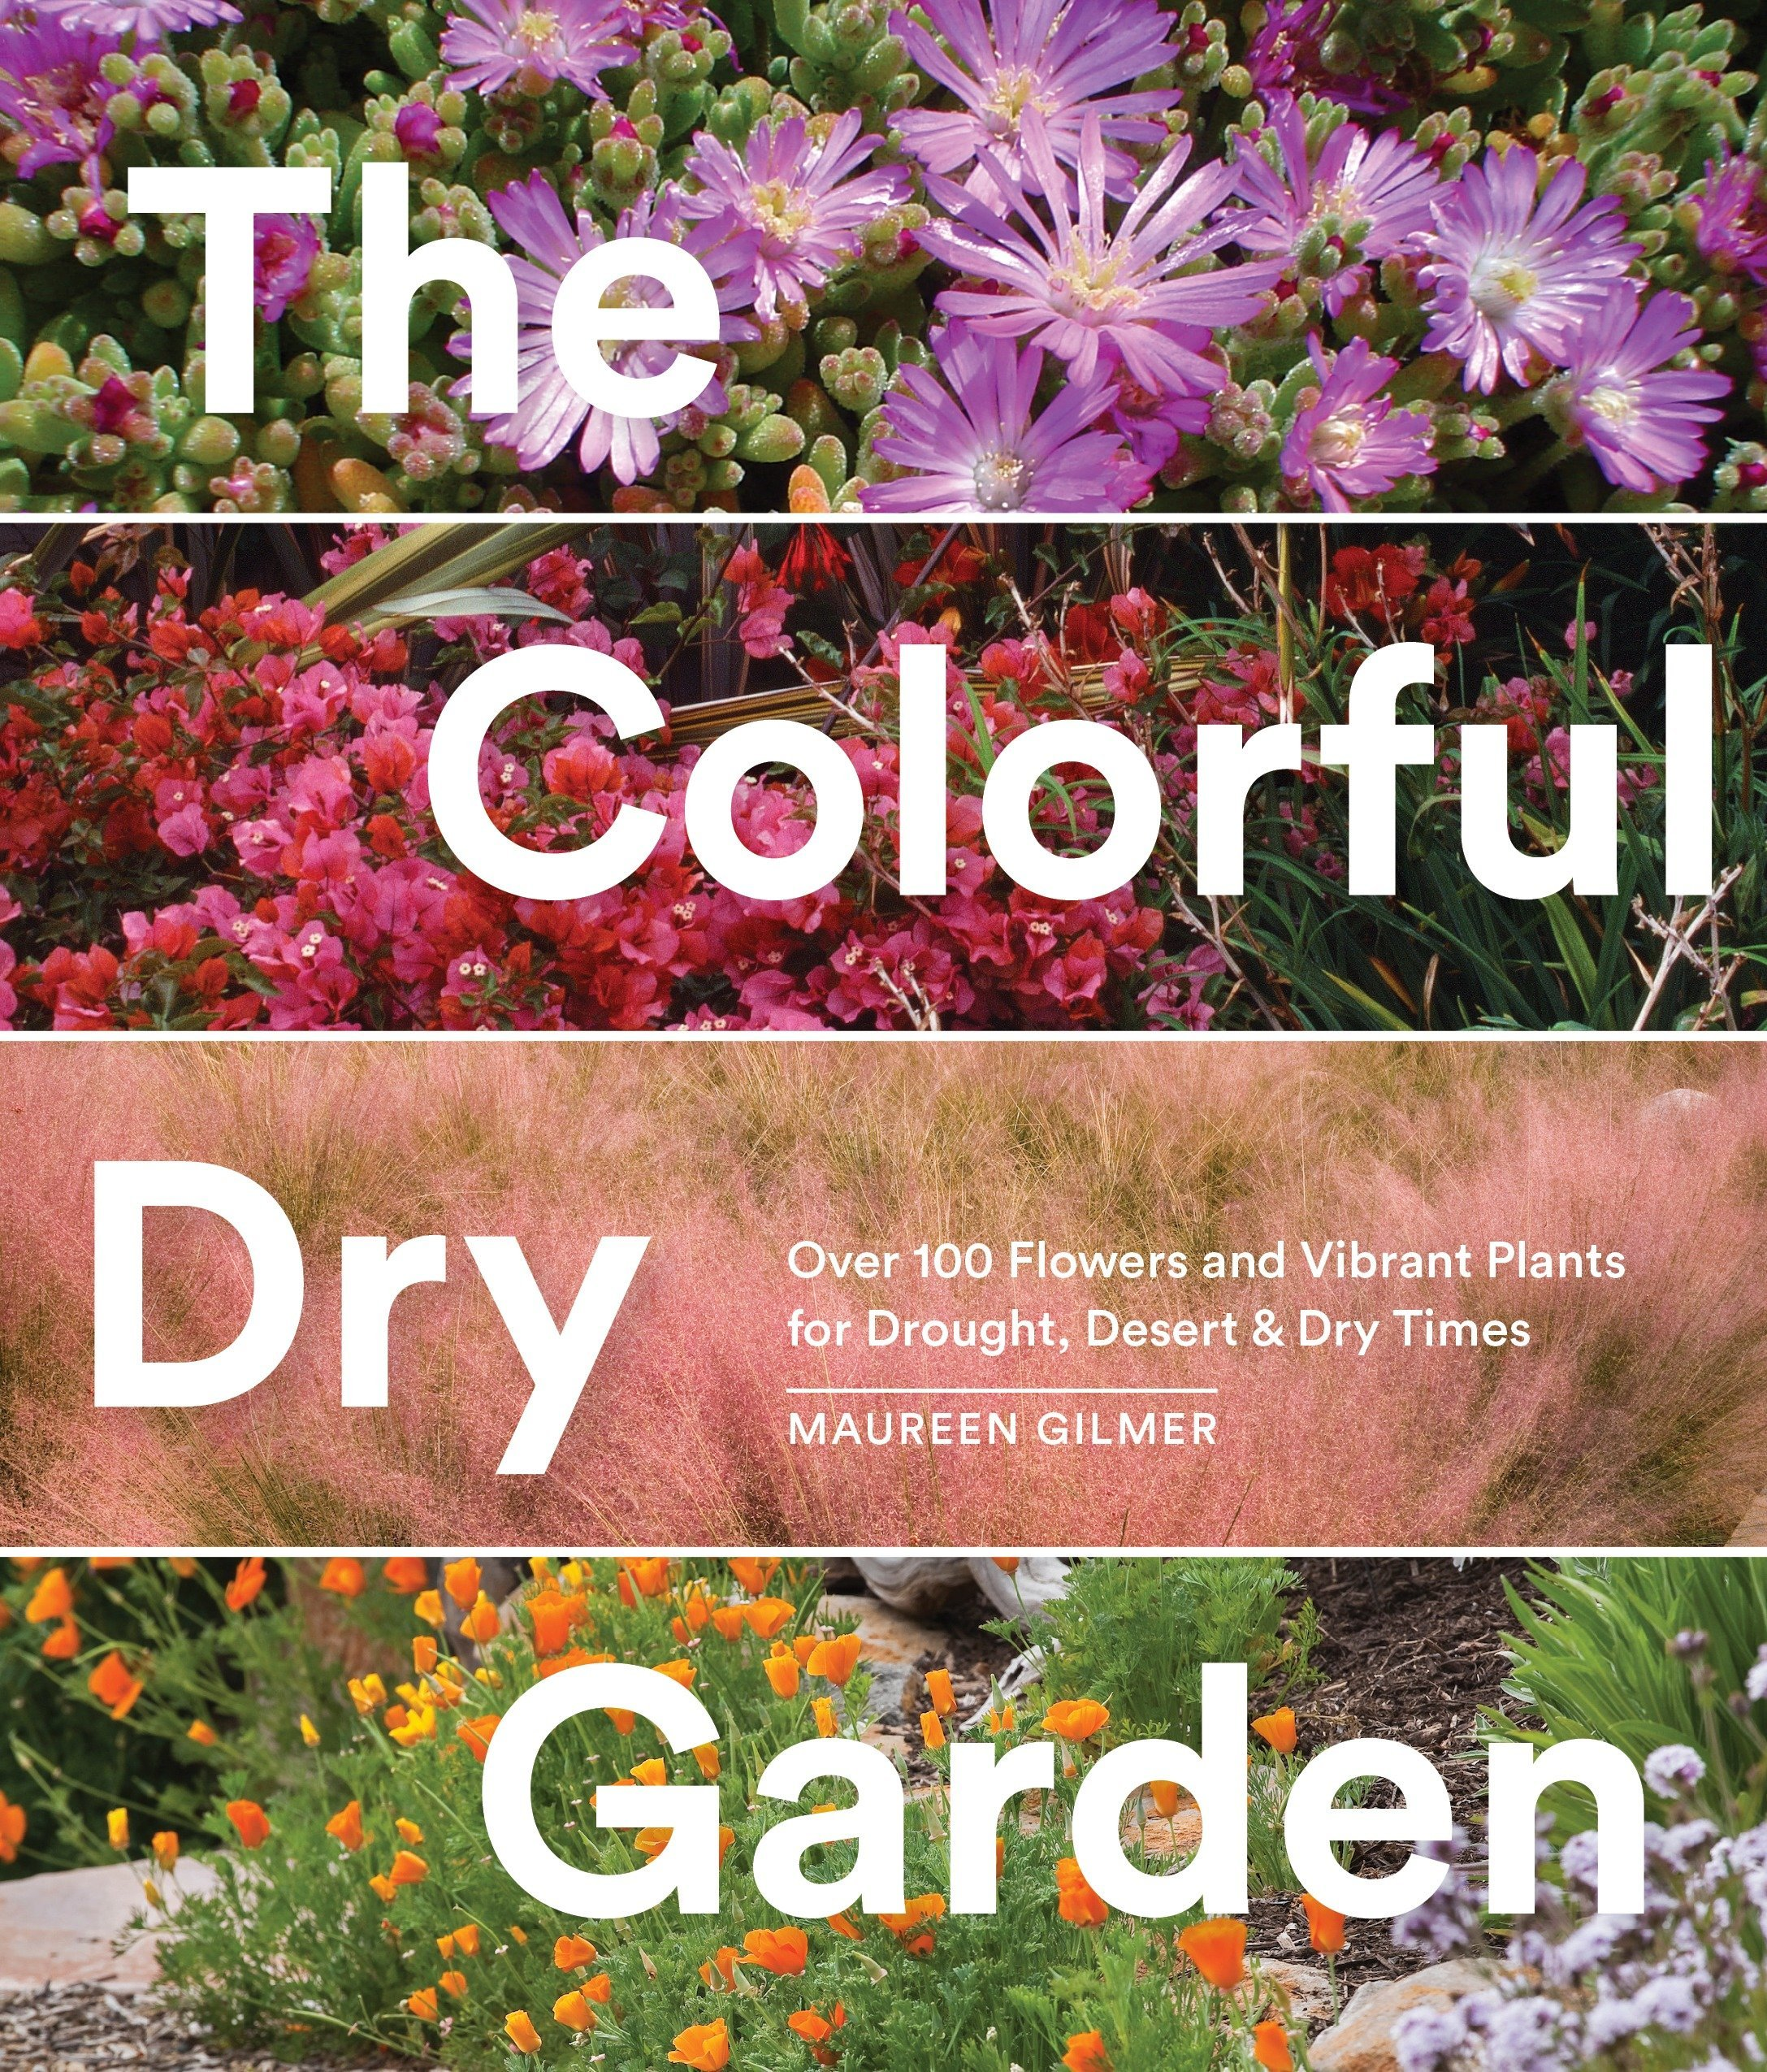 The Colorful Dry Garden Over 100 Flowers And Vibrant Plants For